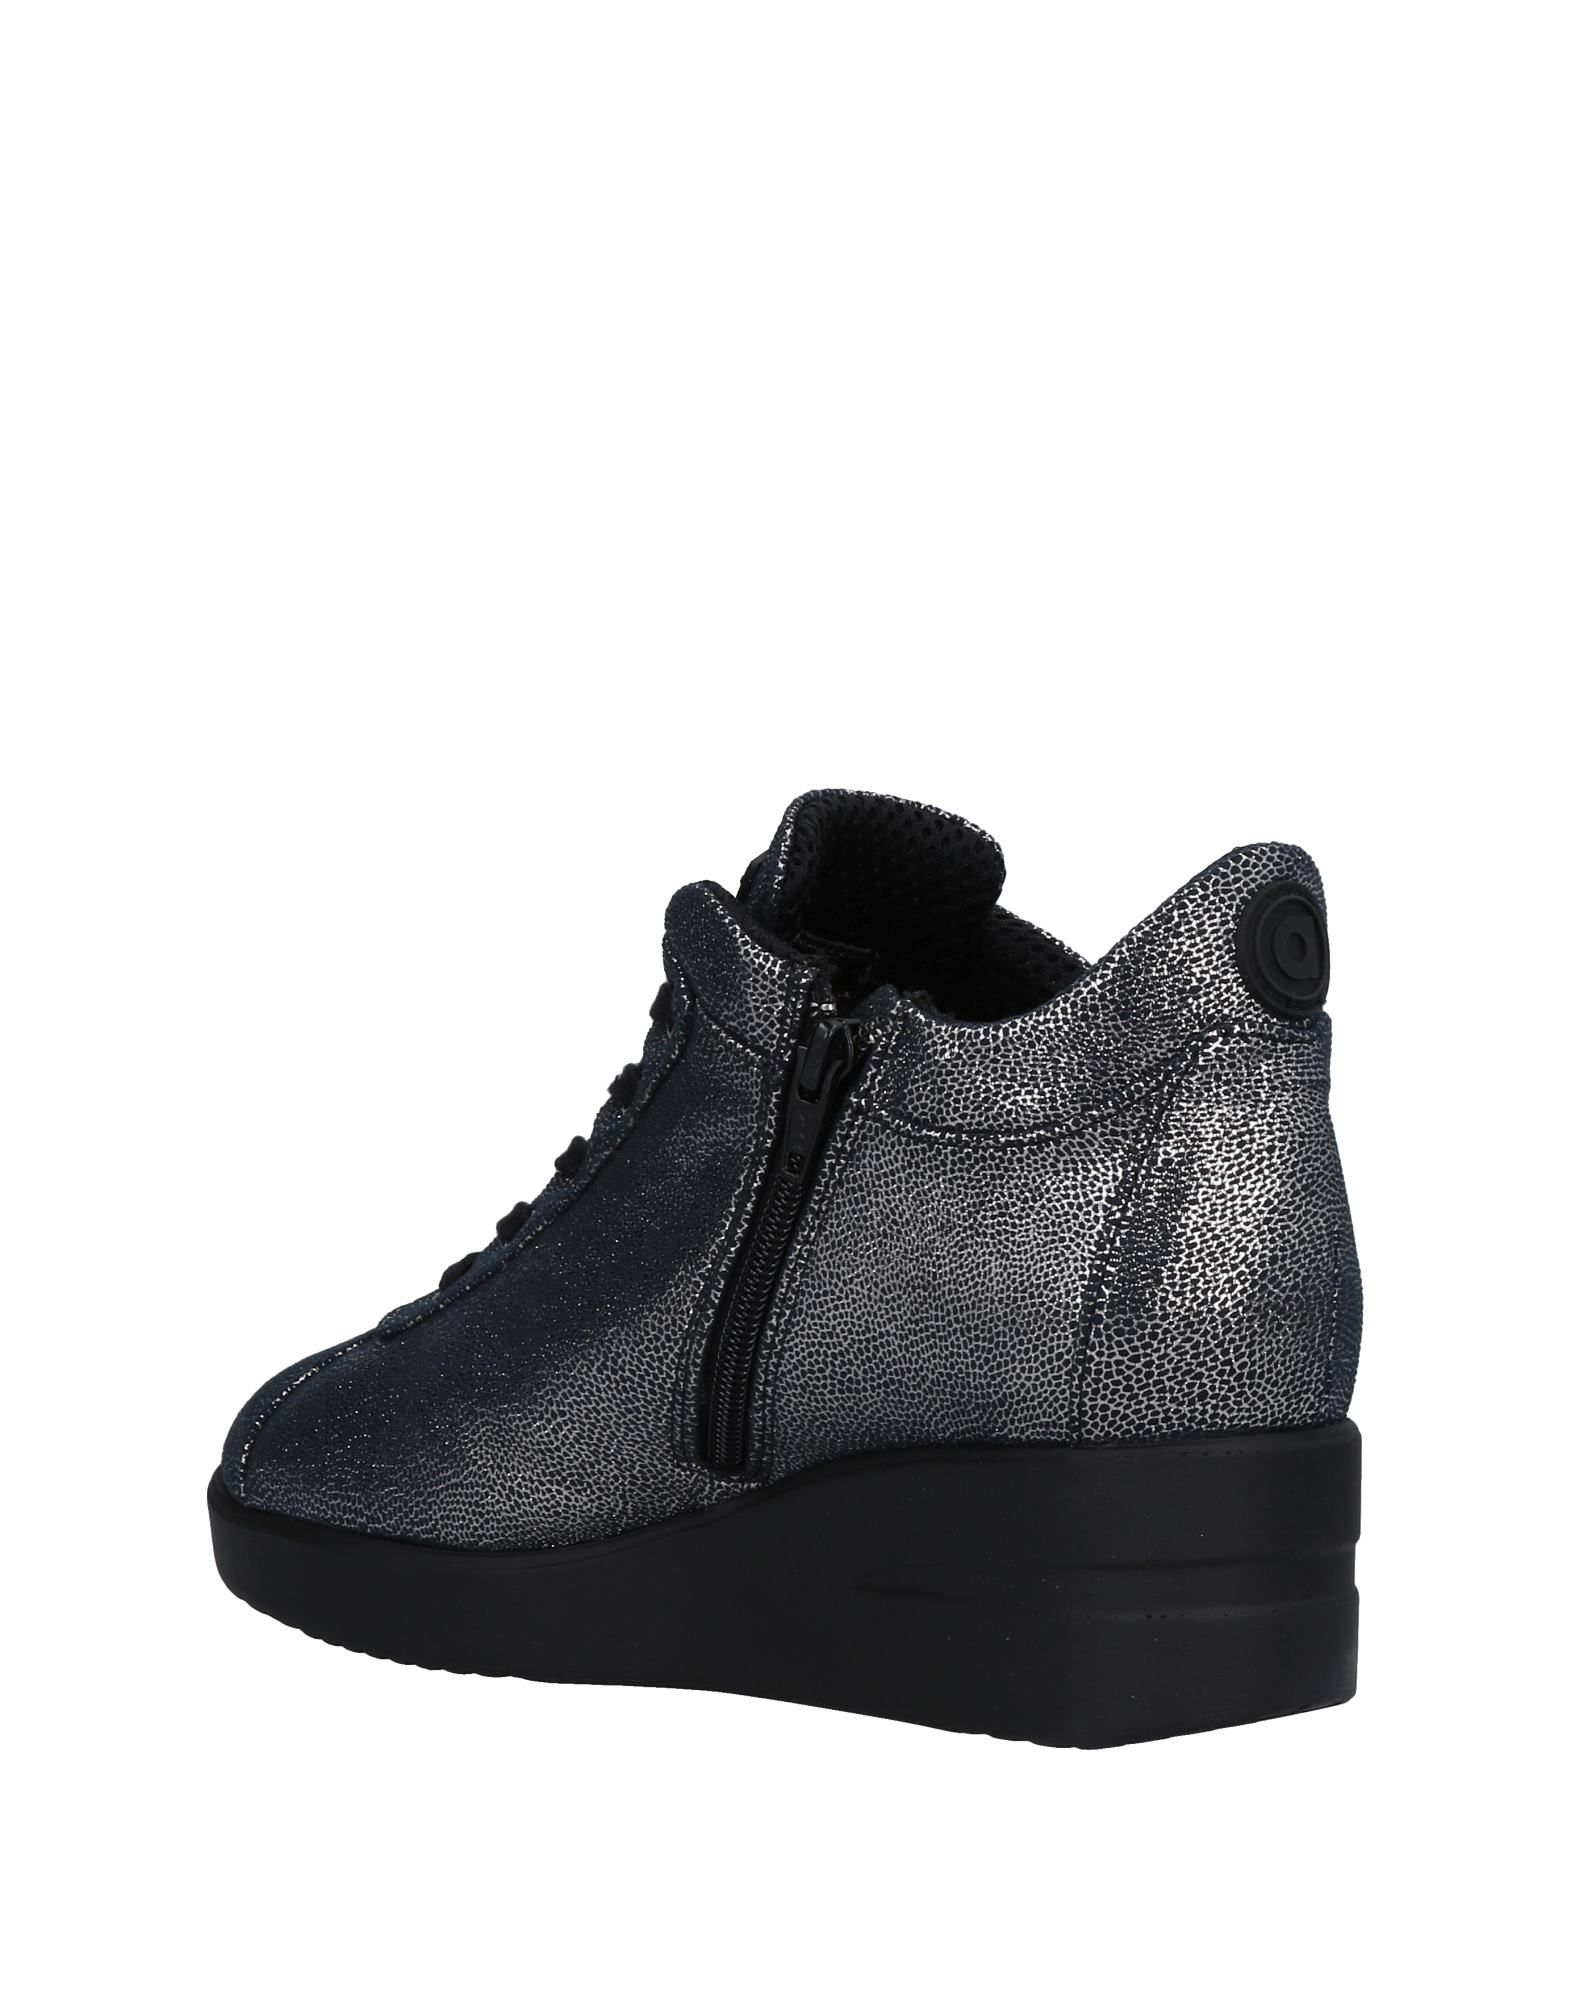 Agile By Rucoline Sneakers Qualität Damen  11492656DB Gute Qualität Sneakers beliebte Schuhe 9dd99a